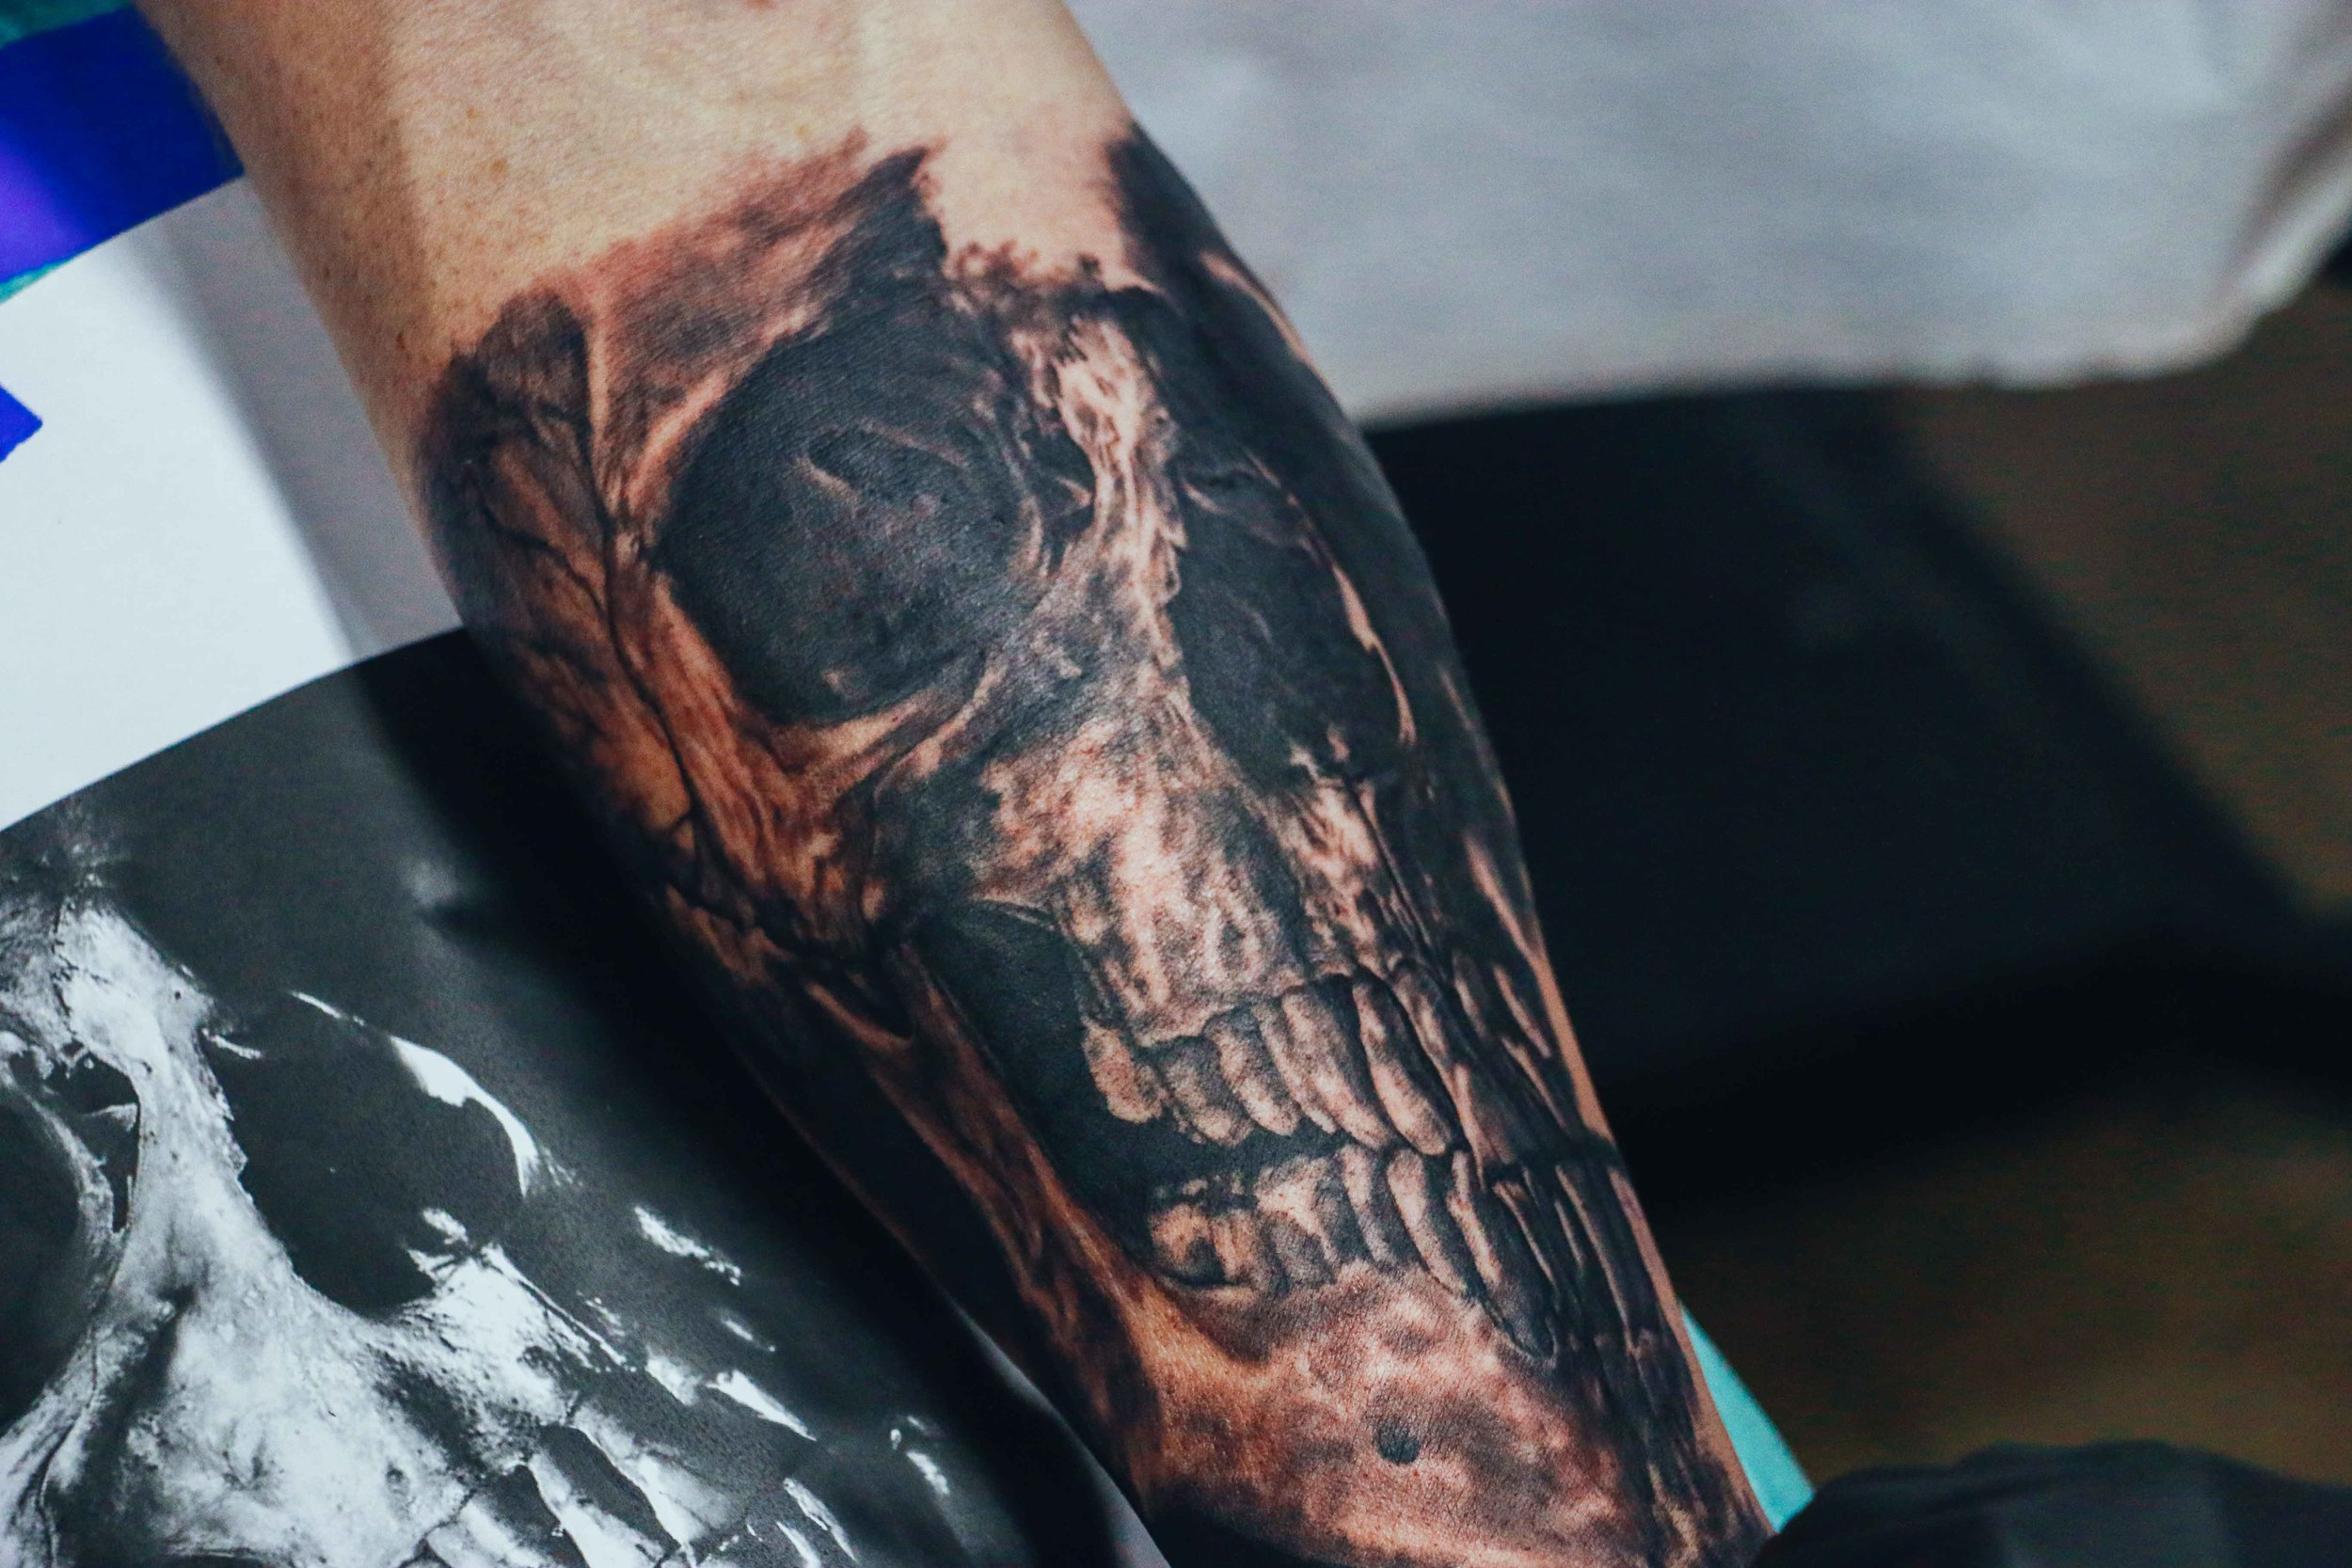 fyink-tattoos-aprshoplife-16.jpg